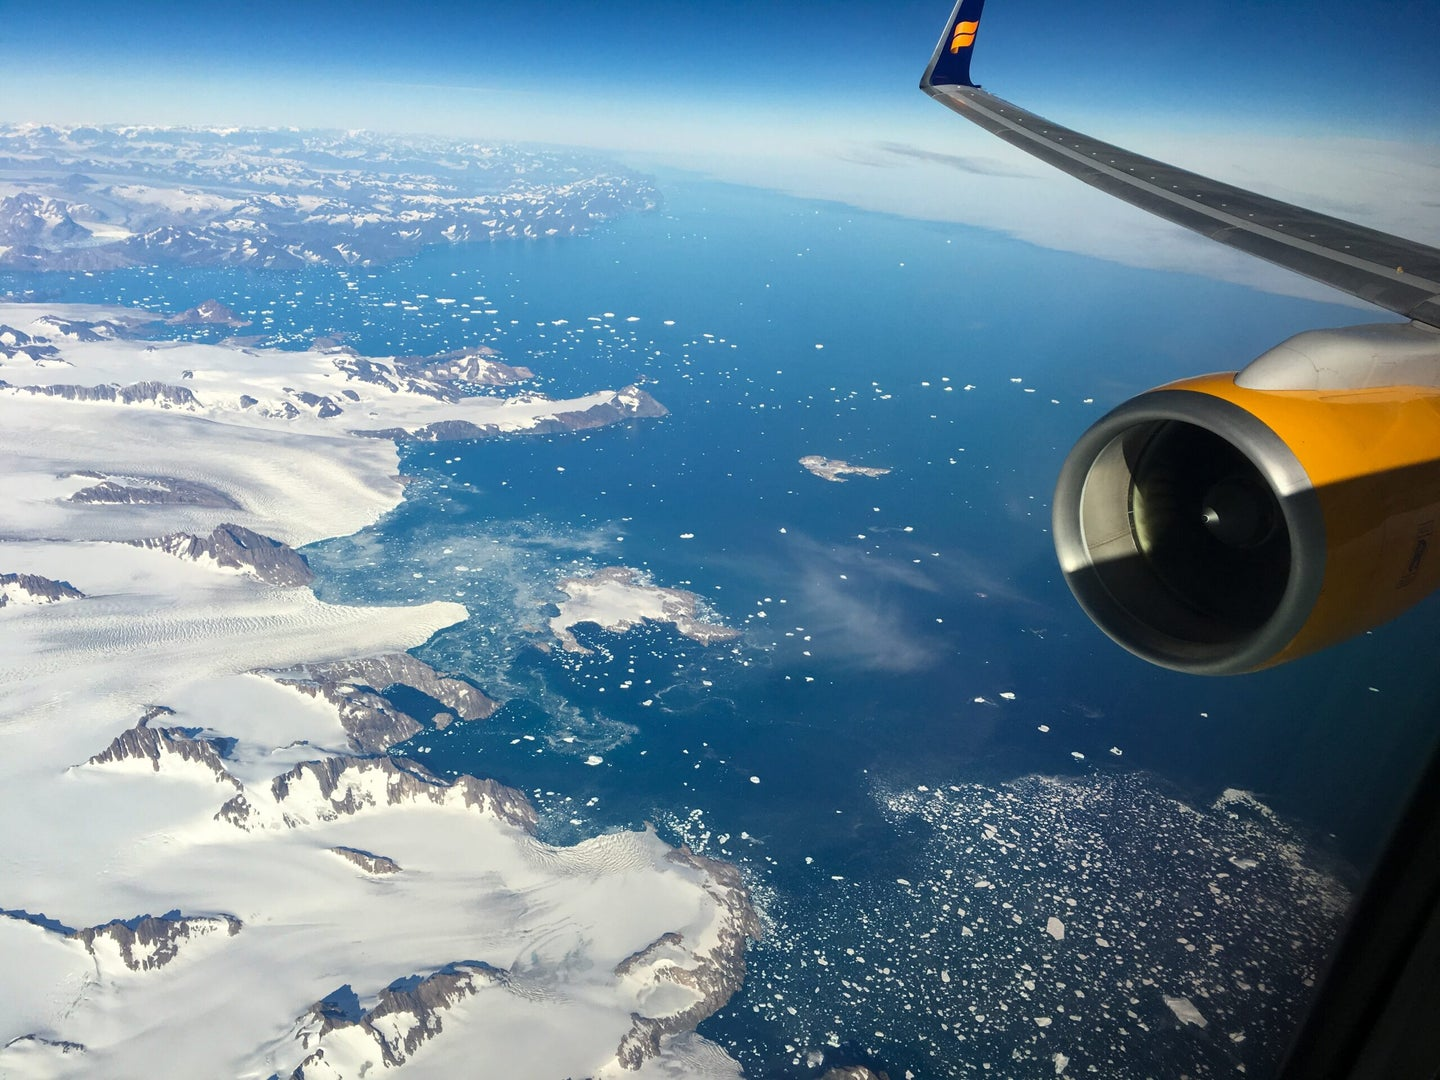 greenland seen from an airplane